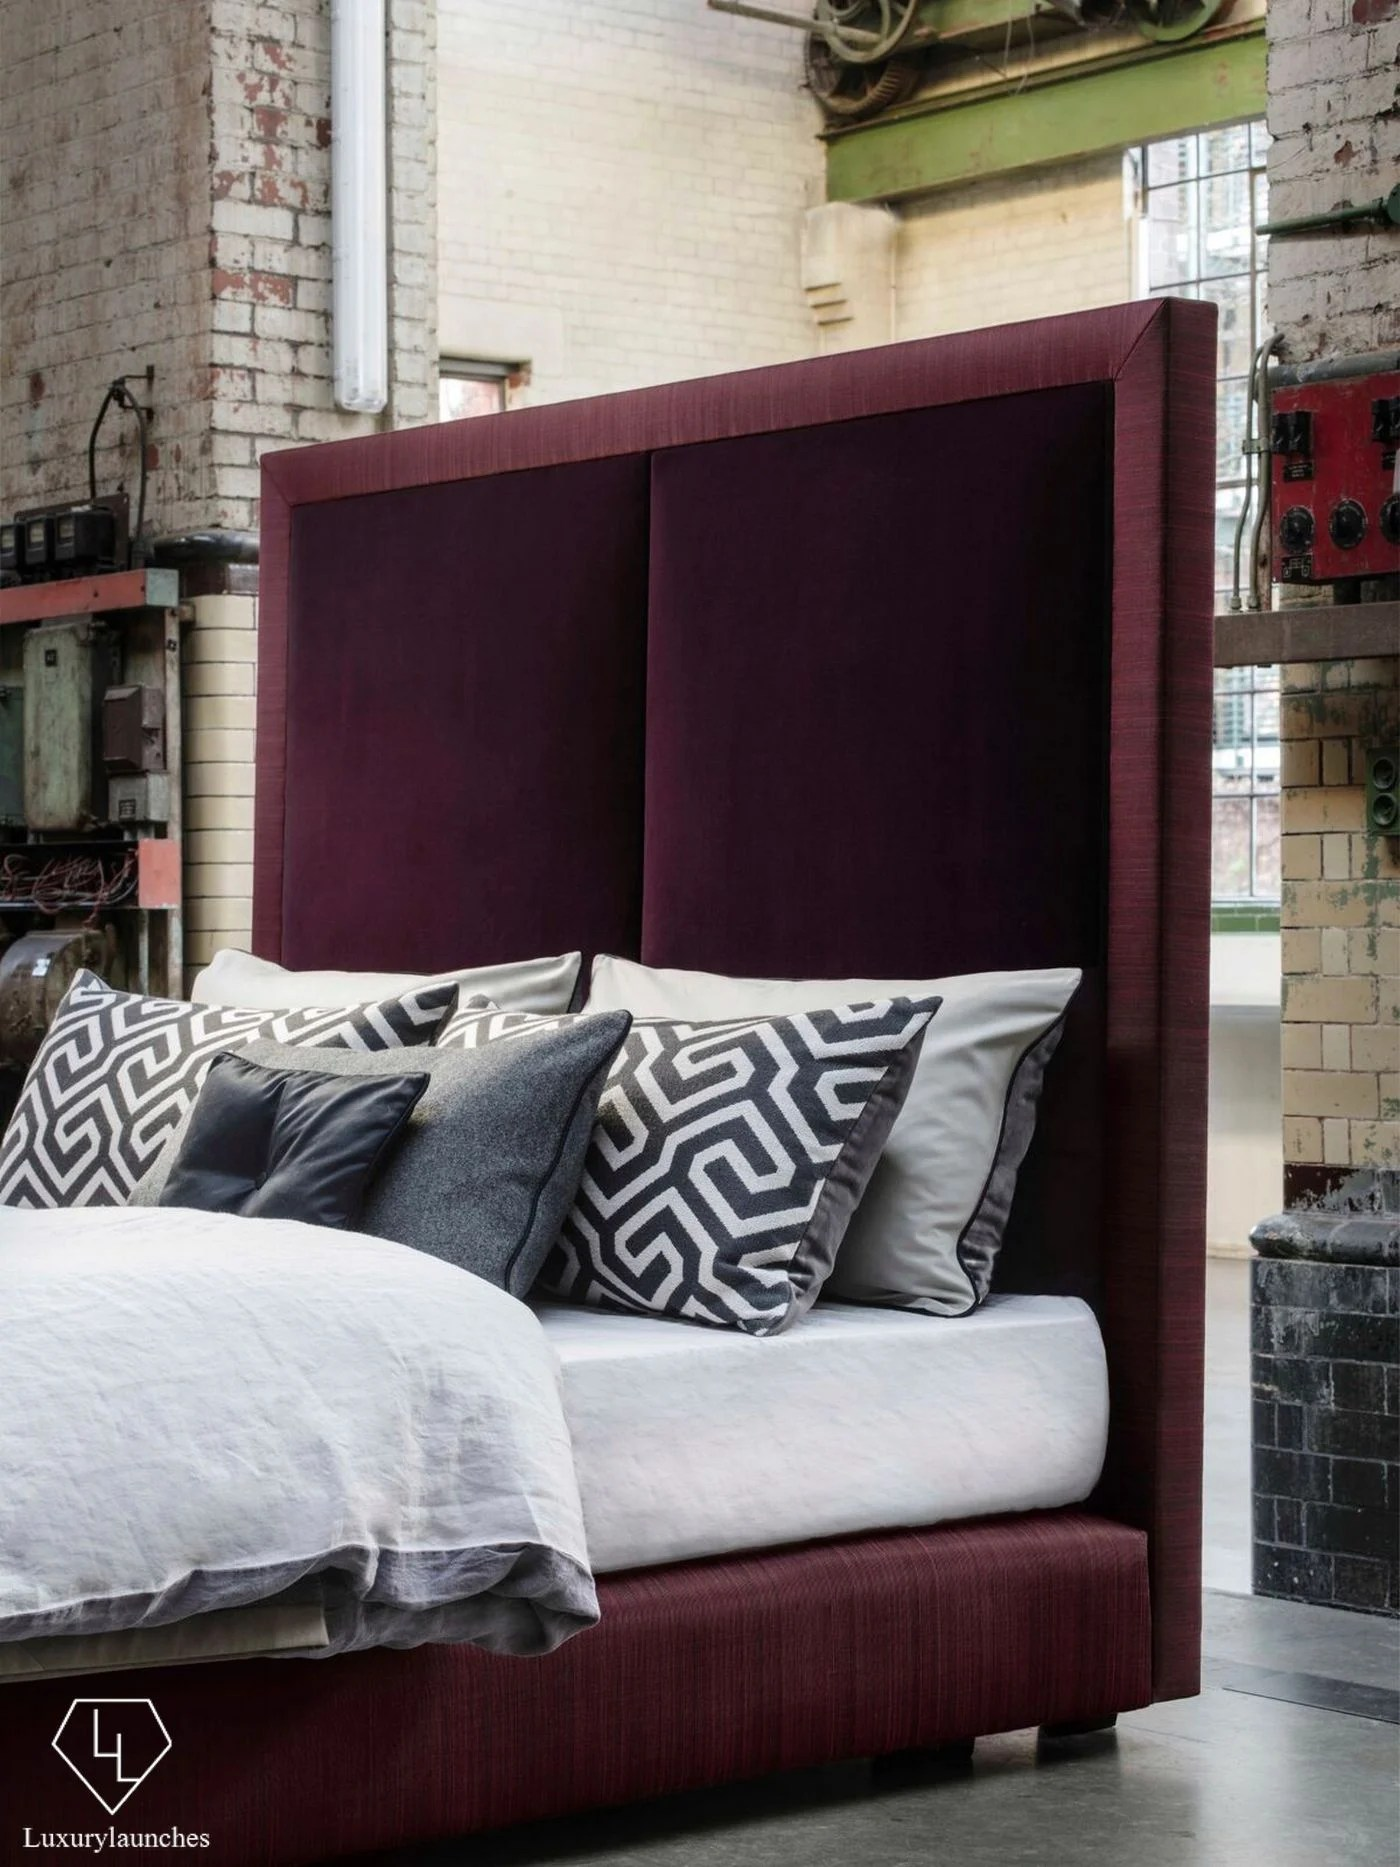 Savoir The Rolls Royce Of Beds Has Launched Two New